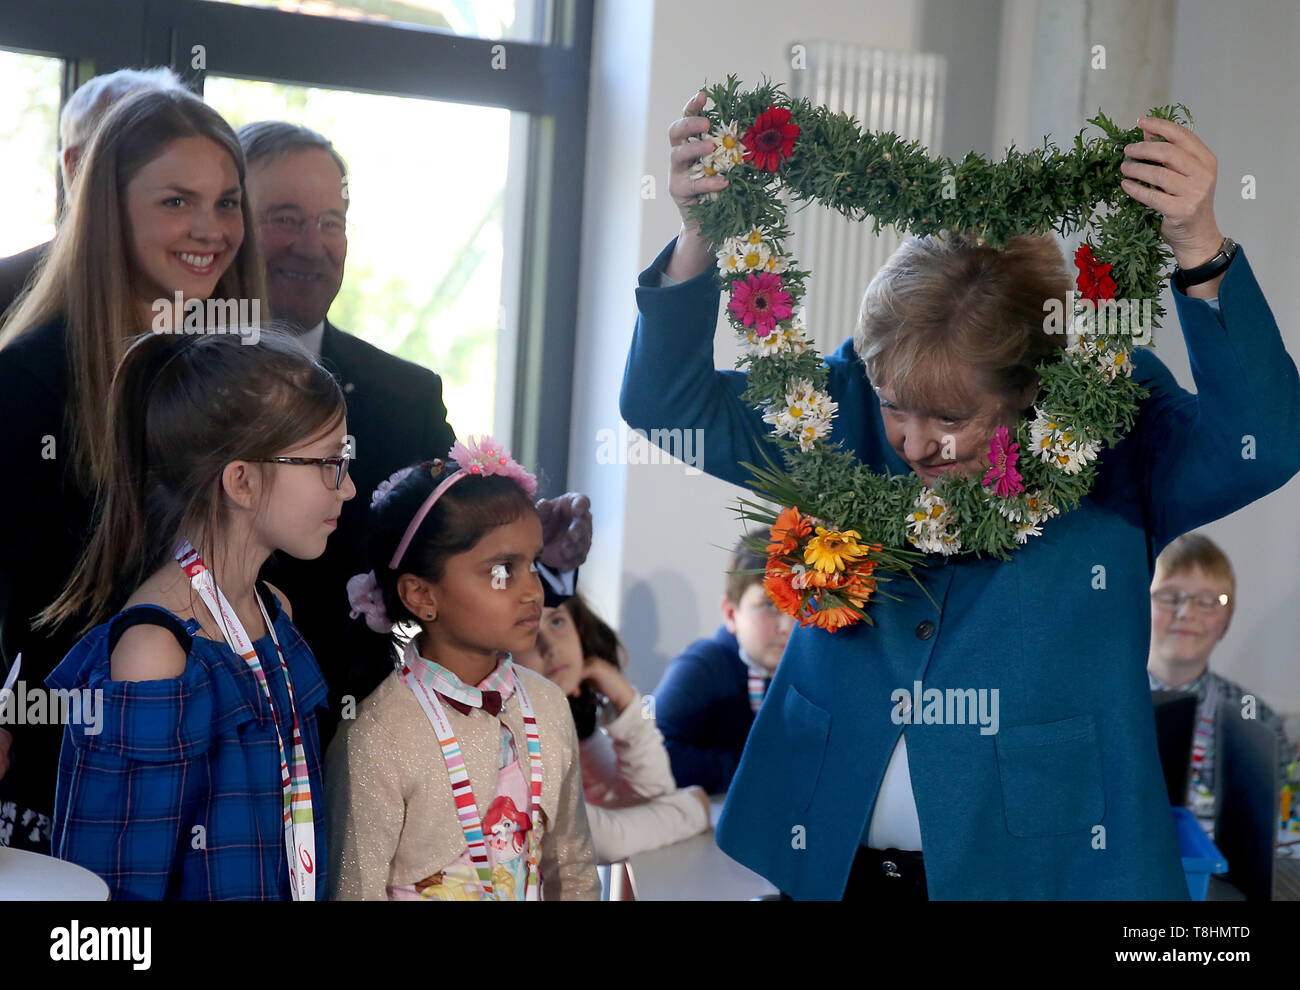 Wuppertal, Germany. 09th May, 2019. Federal Chancellor Angela Merkel (r, CDU) receives a wreath of flowers from the Sri Lankan student Sadurthika Mahenthdran (2nd from right) at the Junior University. The Wuppertal Junior University is a nationwide unique extracurricular educational and research institution for 4 to 20 year olds. Credit: Oliver Berg/dpa/Alamy Live News - Stock Image